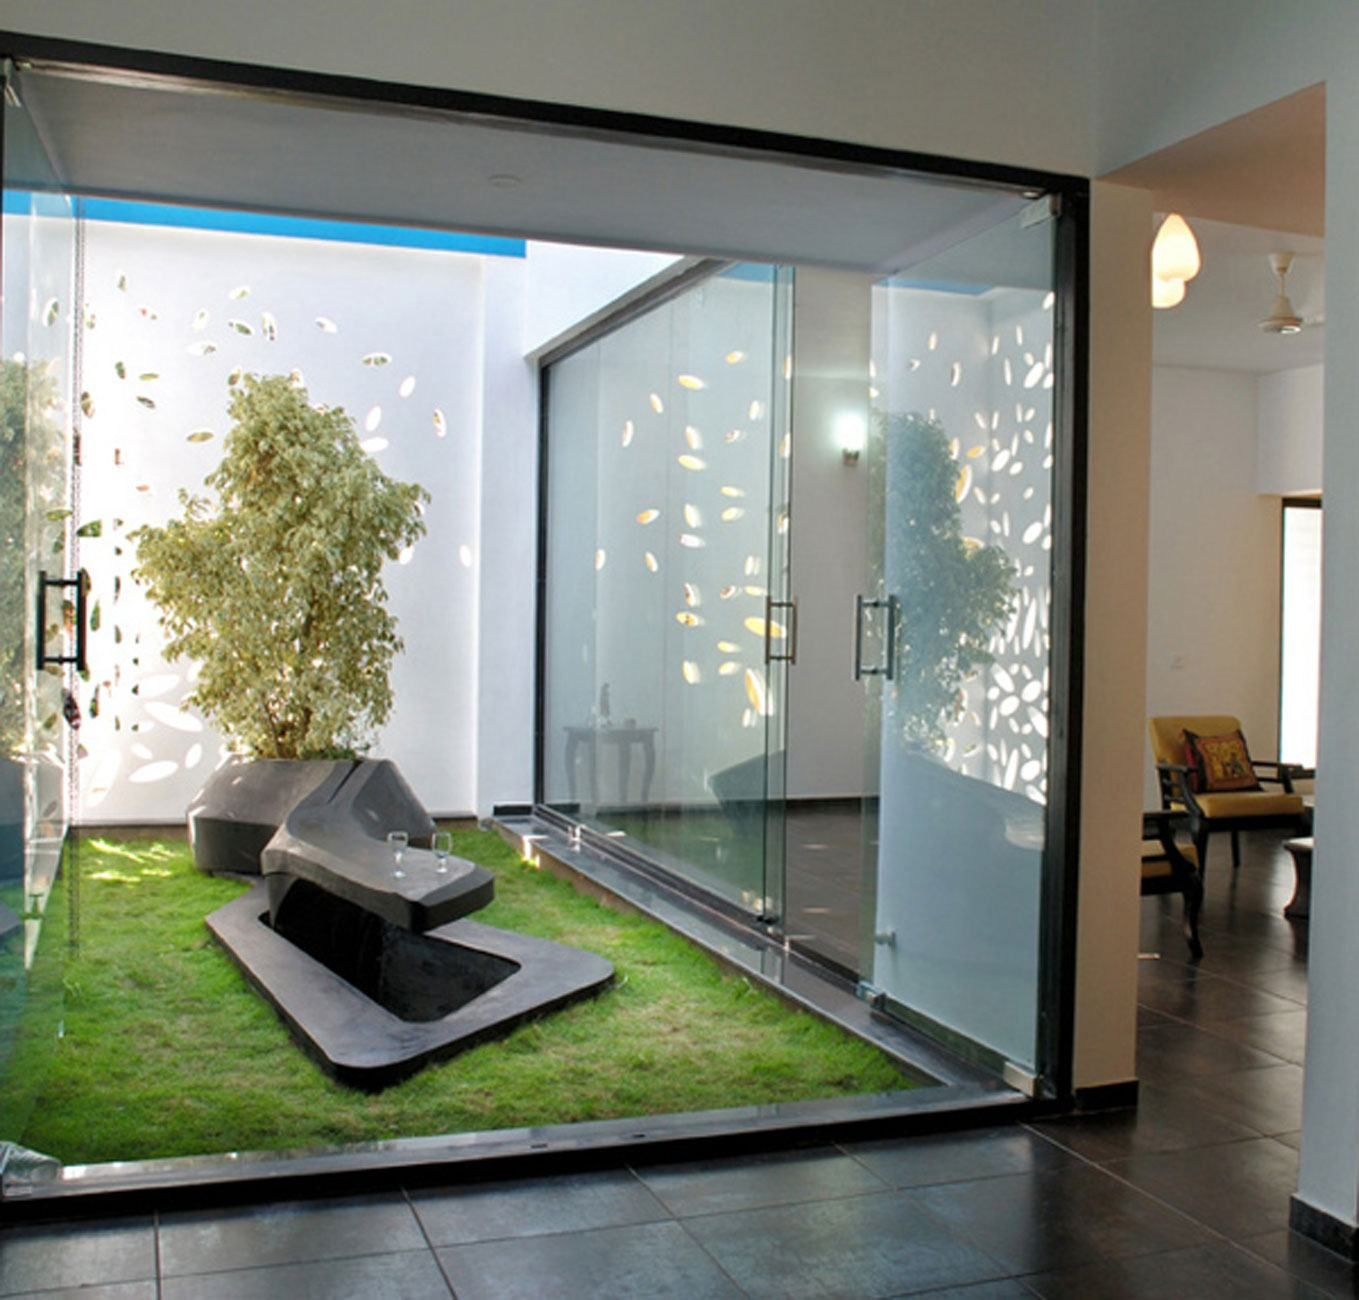 Home designs gallery amazing interior garden with modern for Modern house with courtyard